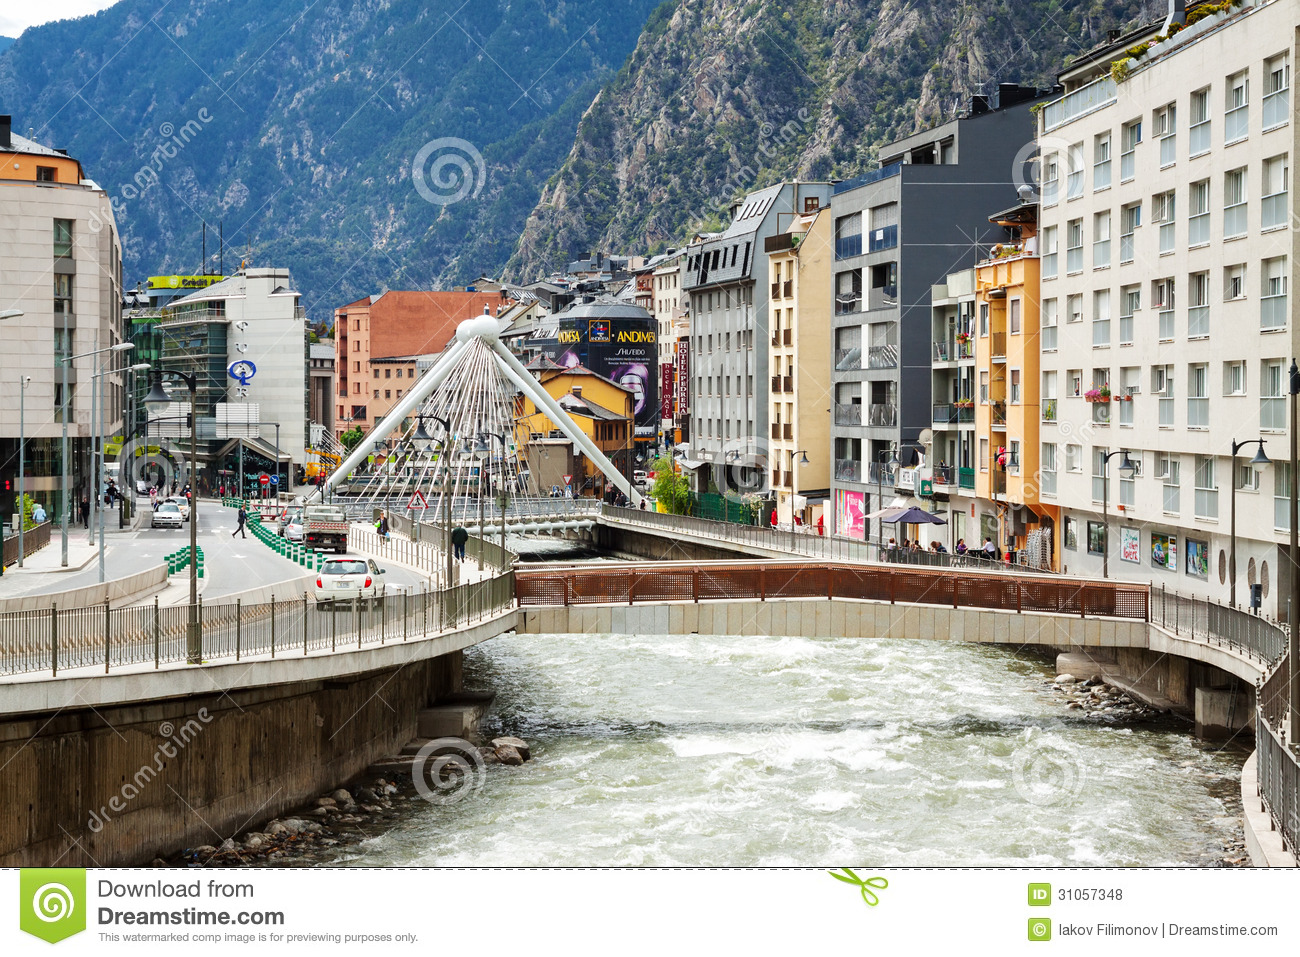 Andorra La Vella Andorra  city photos : ANDORRA LA VELLA, ANDORRA MAY 8: Valira river at city in May 8, 2013 ...